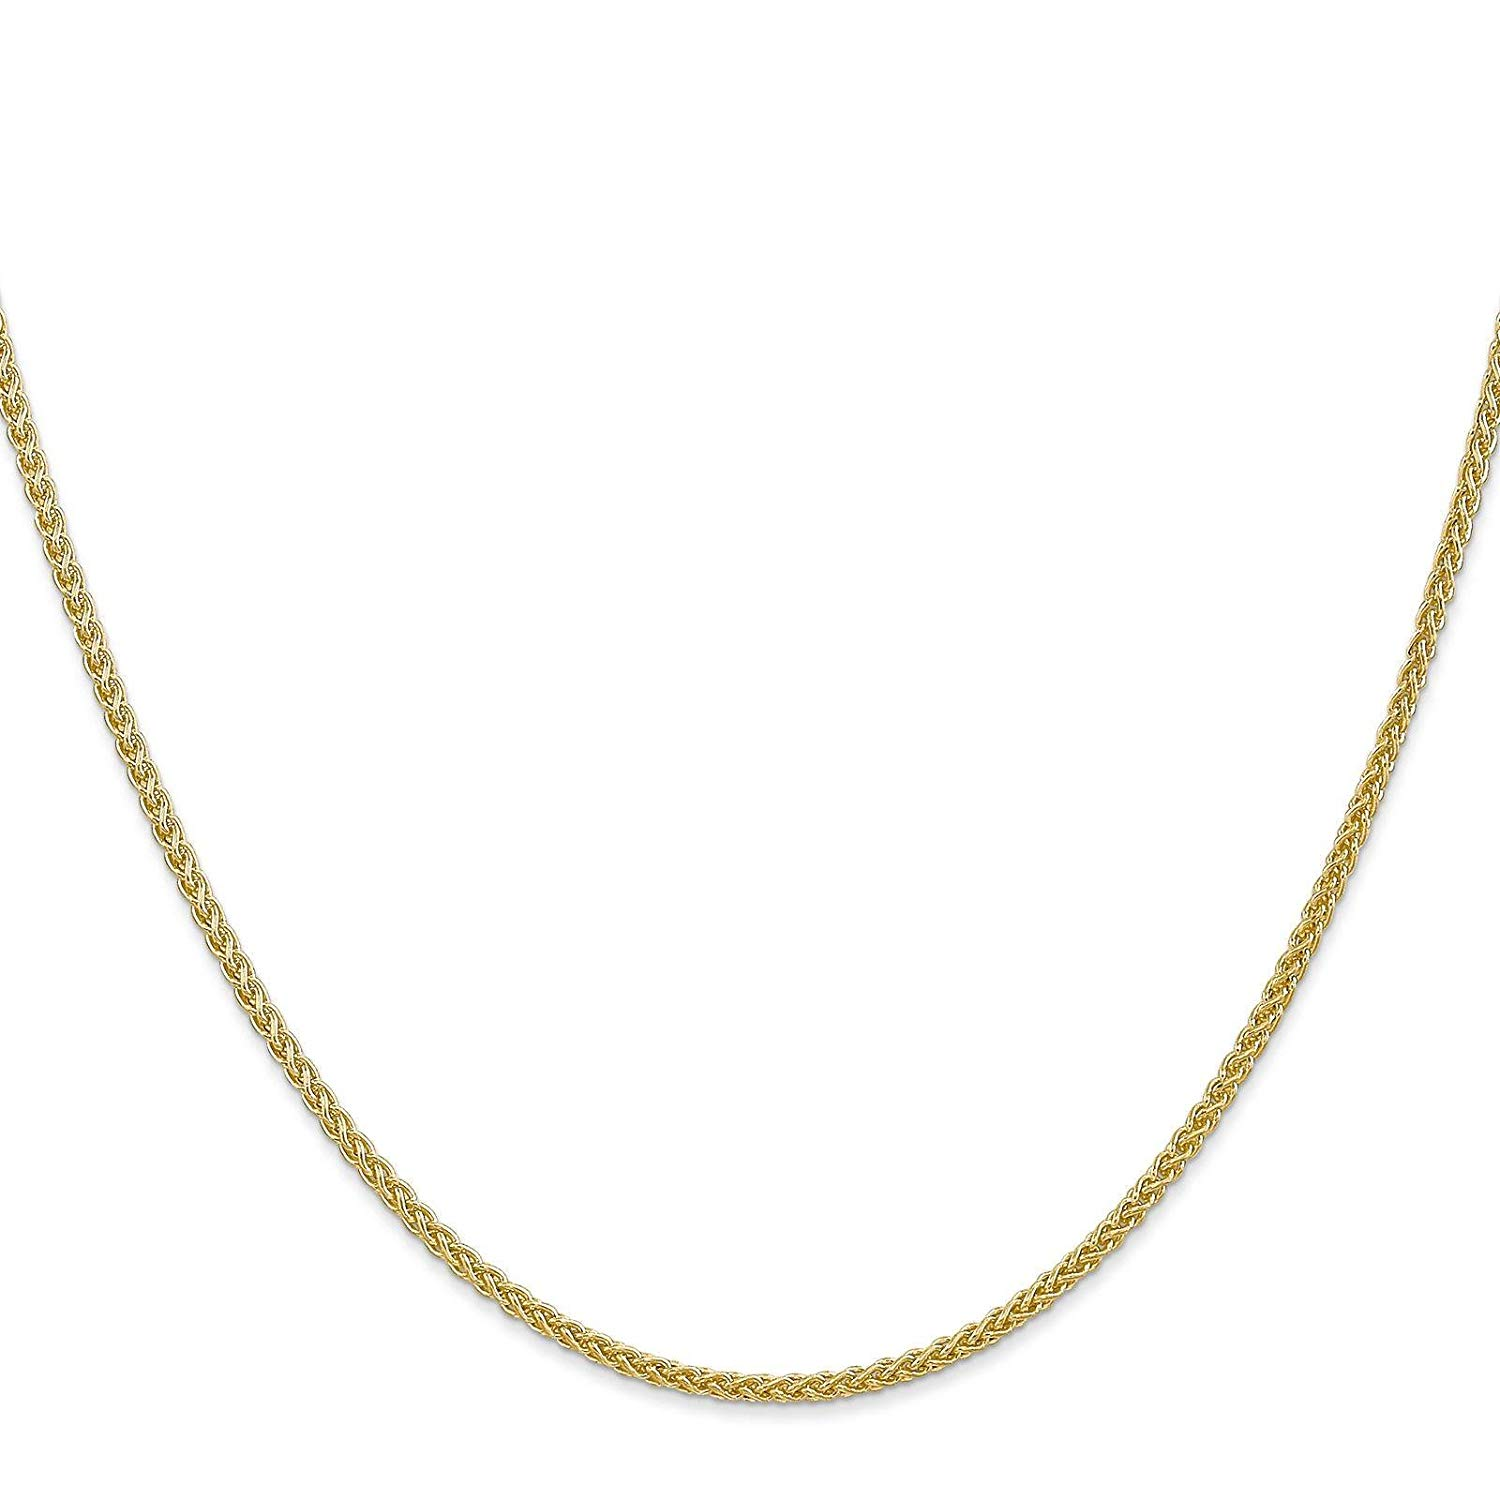 "14k Yellow Gold 2.00mm Semi-Solid Polished Wheat Chain Necklace Anklet 10"" - 24"""